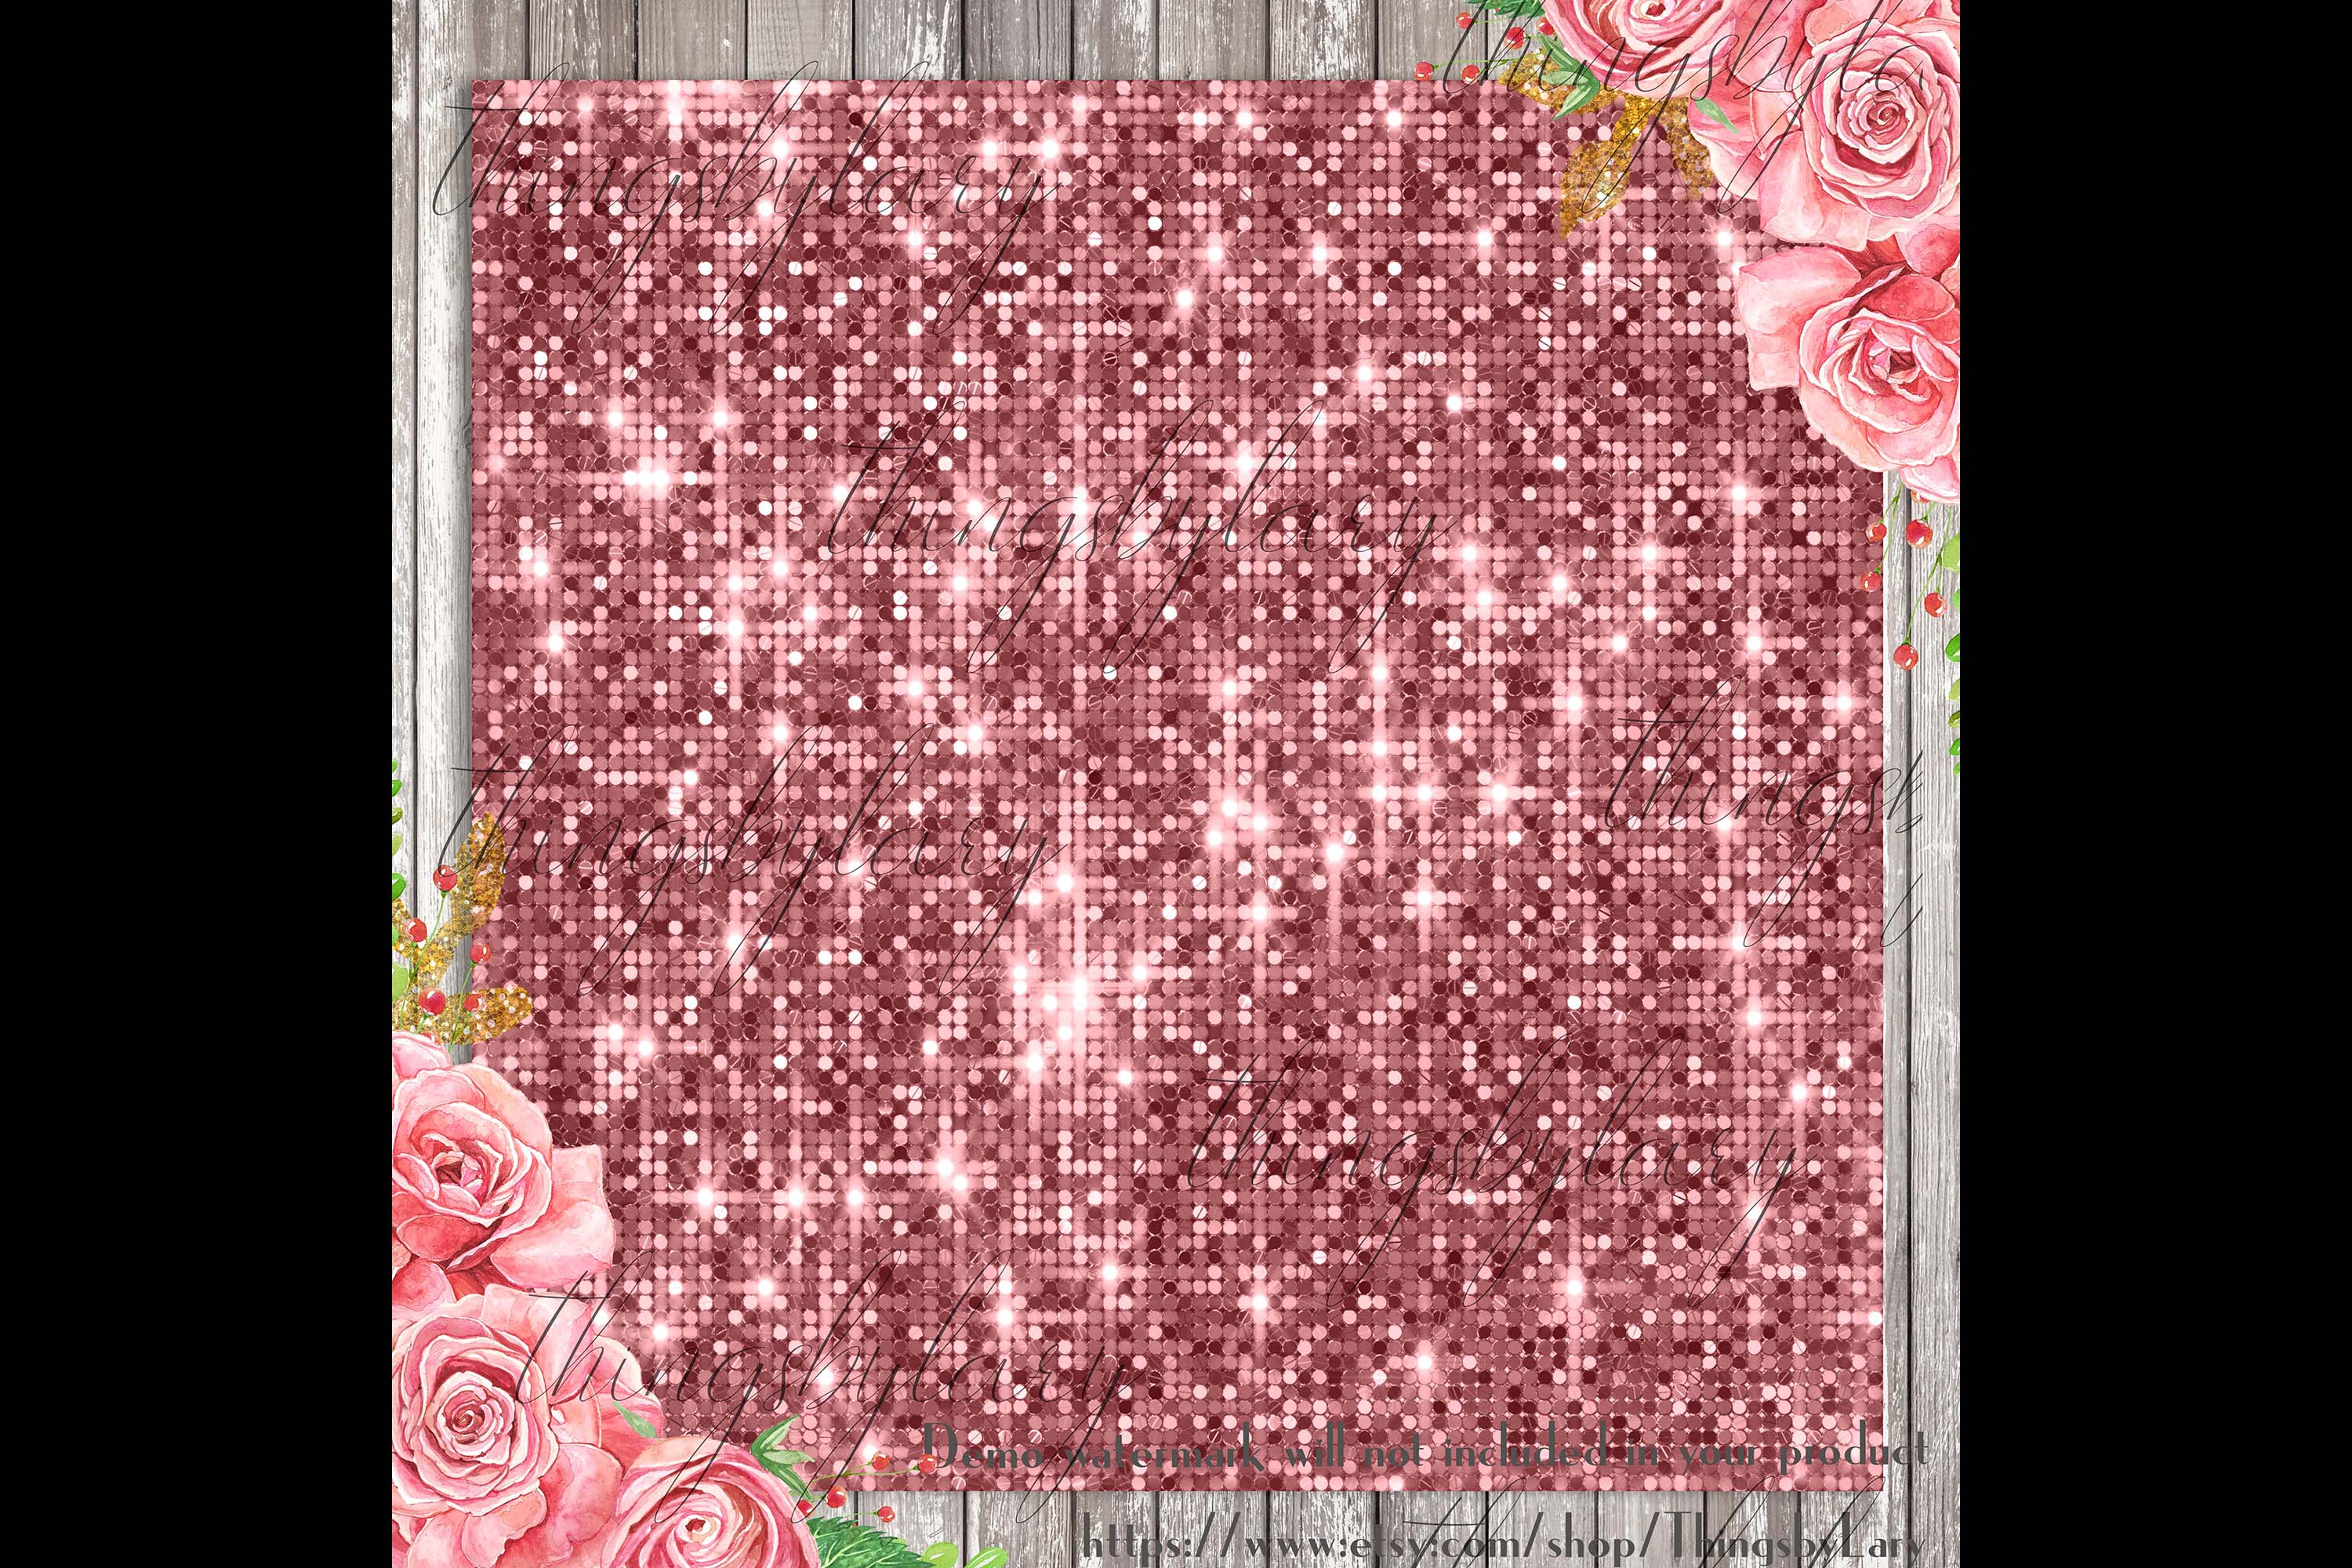 100 Seamless Glowing Bling Bling Disco Sequin Digital Papers example image 2